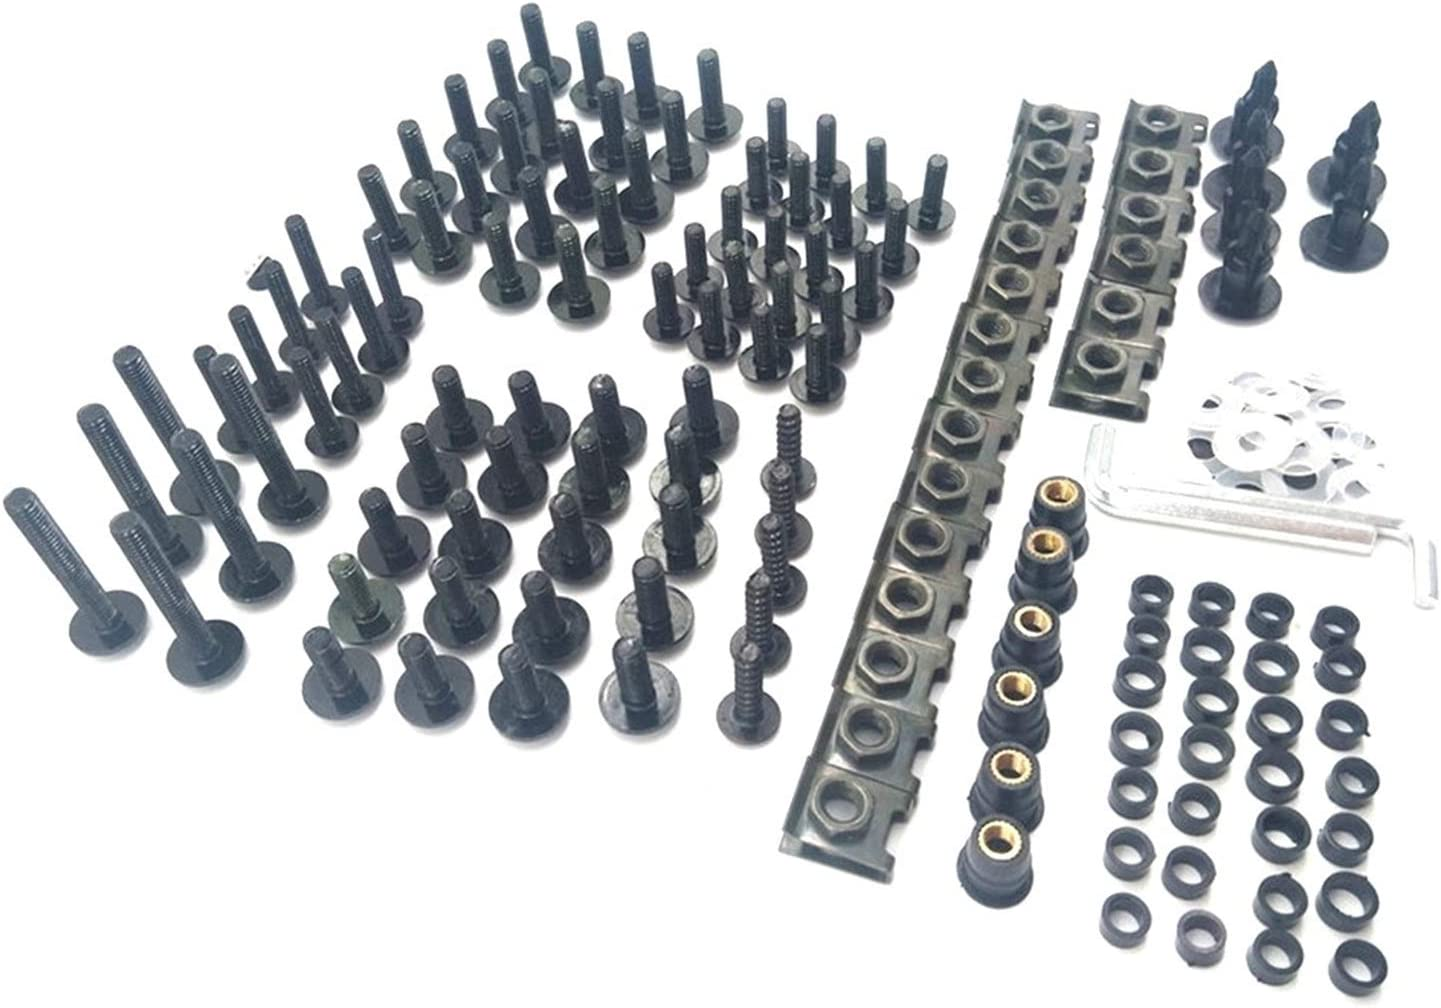 Zhbqcmou Motorcycle Limited time trial price Fairing Bolts Max 54% OFF Screw Kit Compa Clips Nuts Set